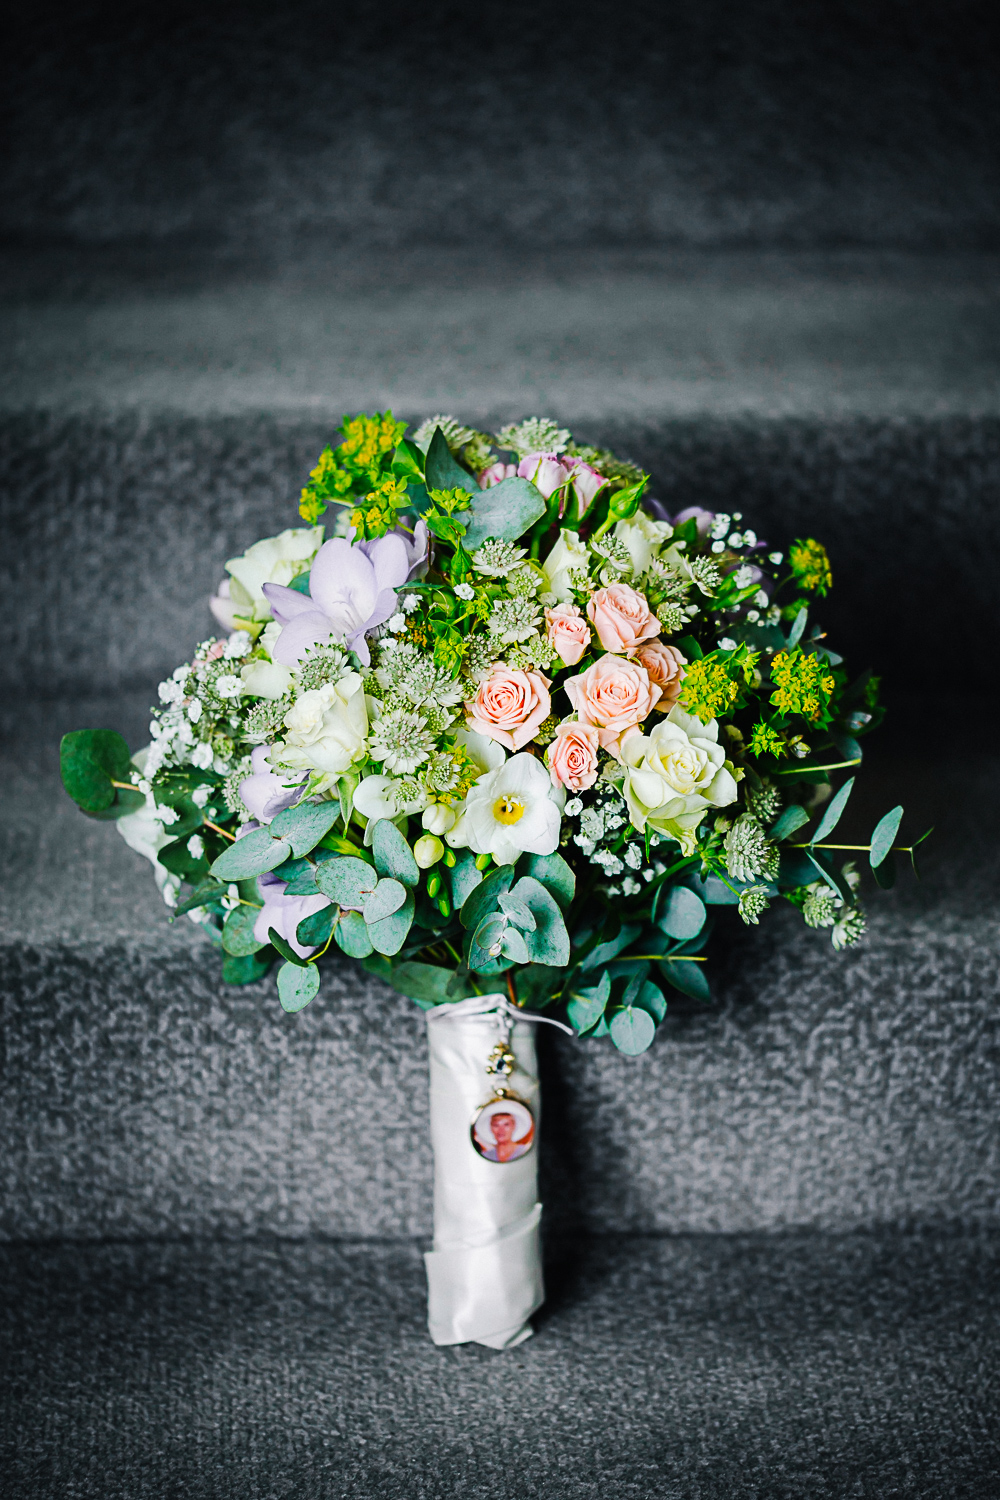 Spring Bouquet at Swynford Manor Wedding - Cambridge Photographer